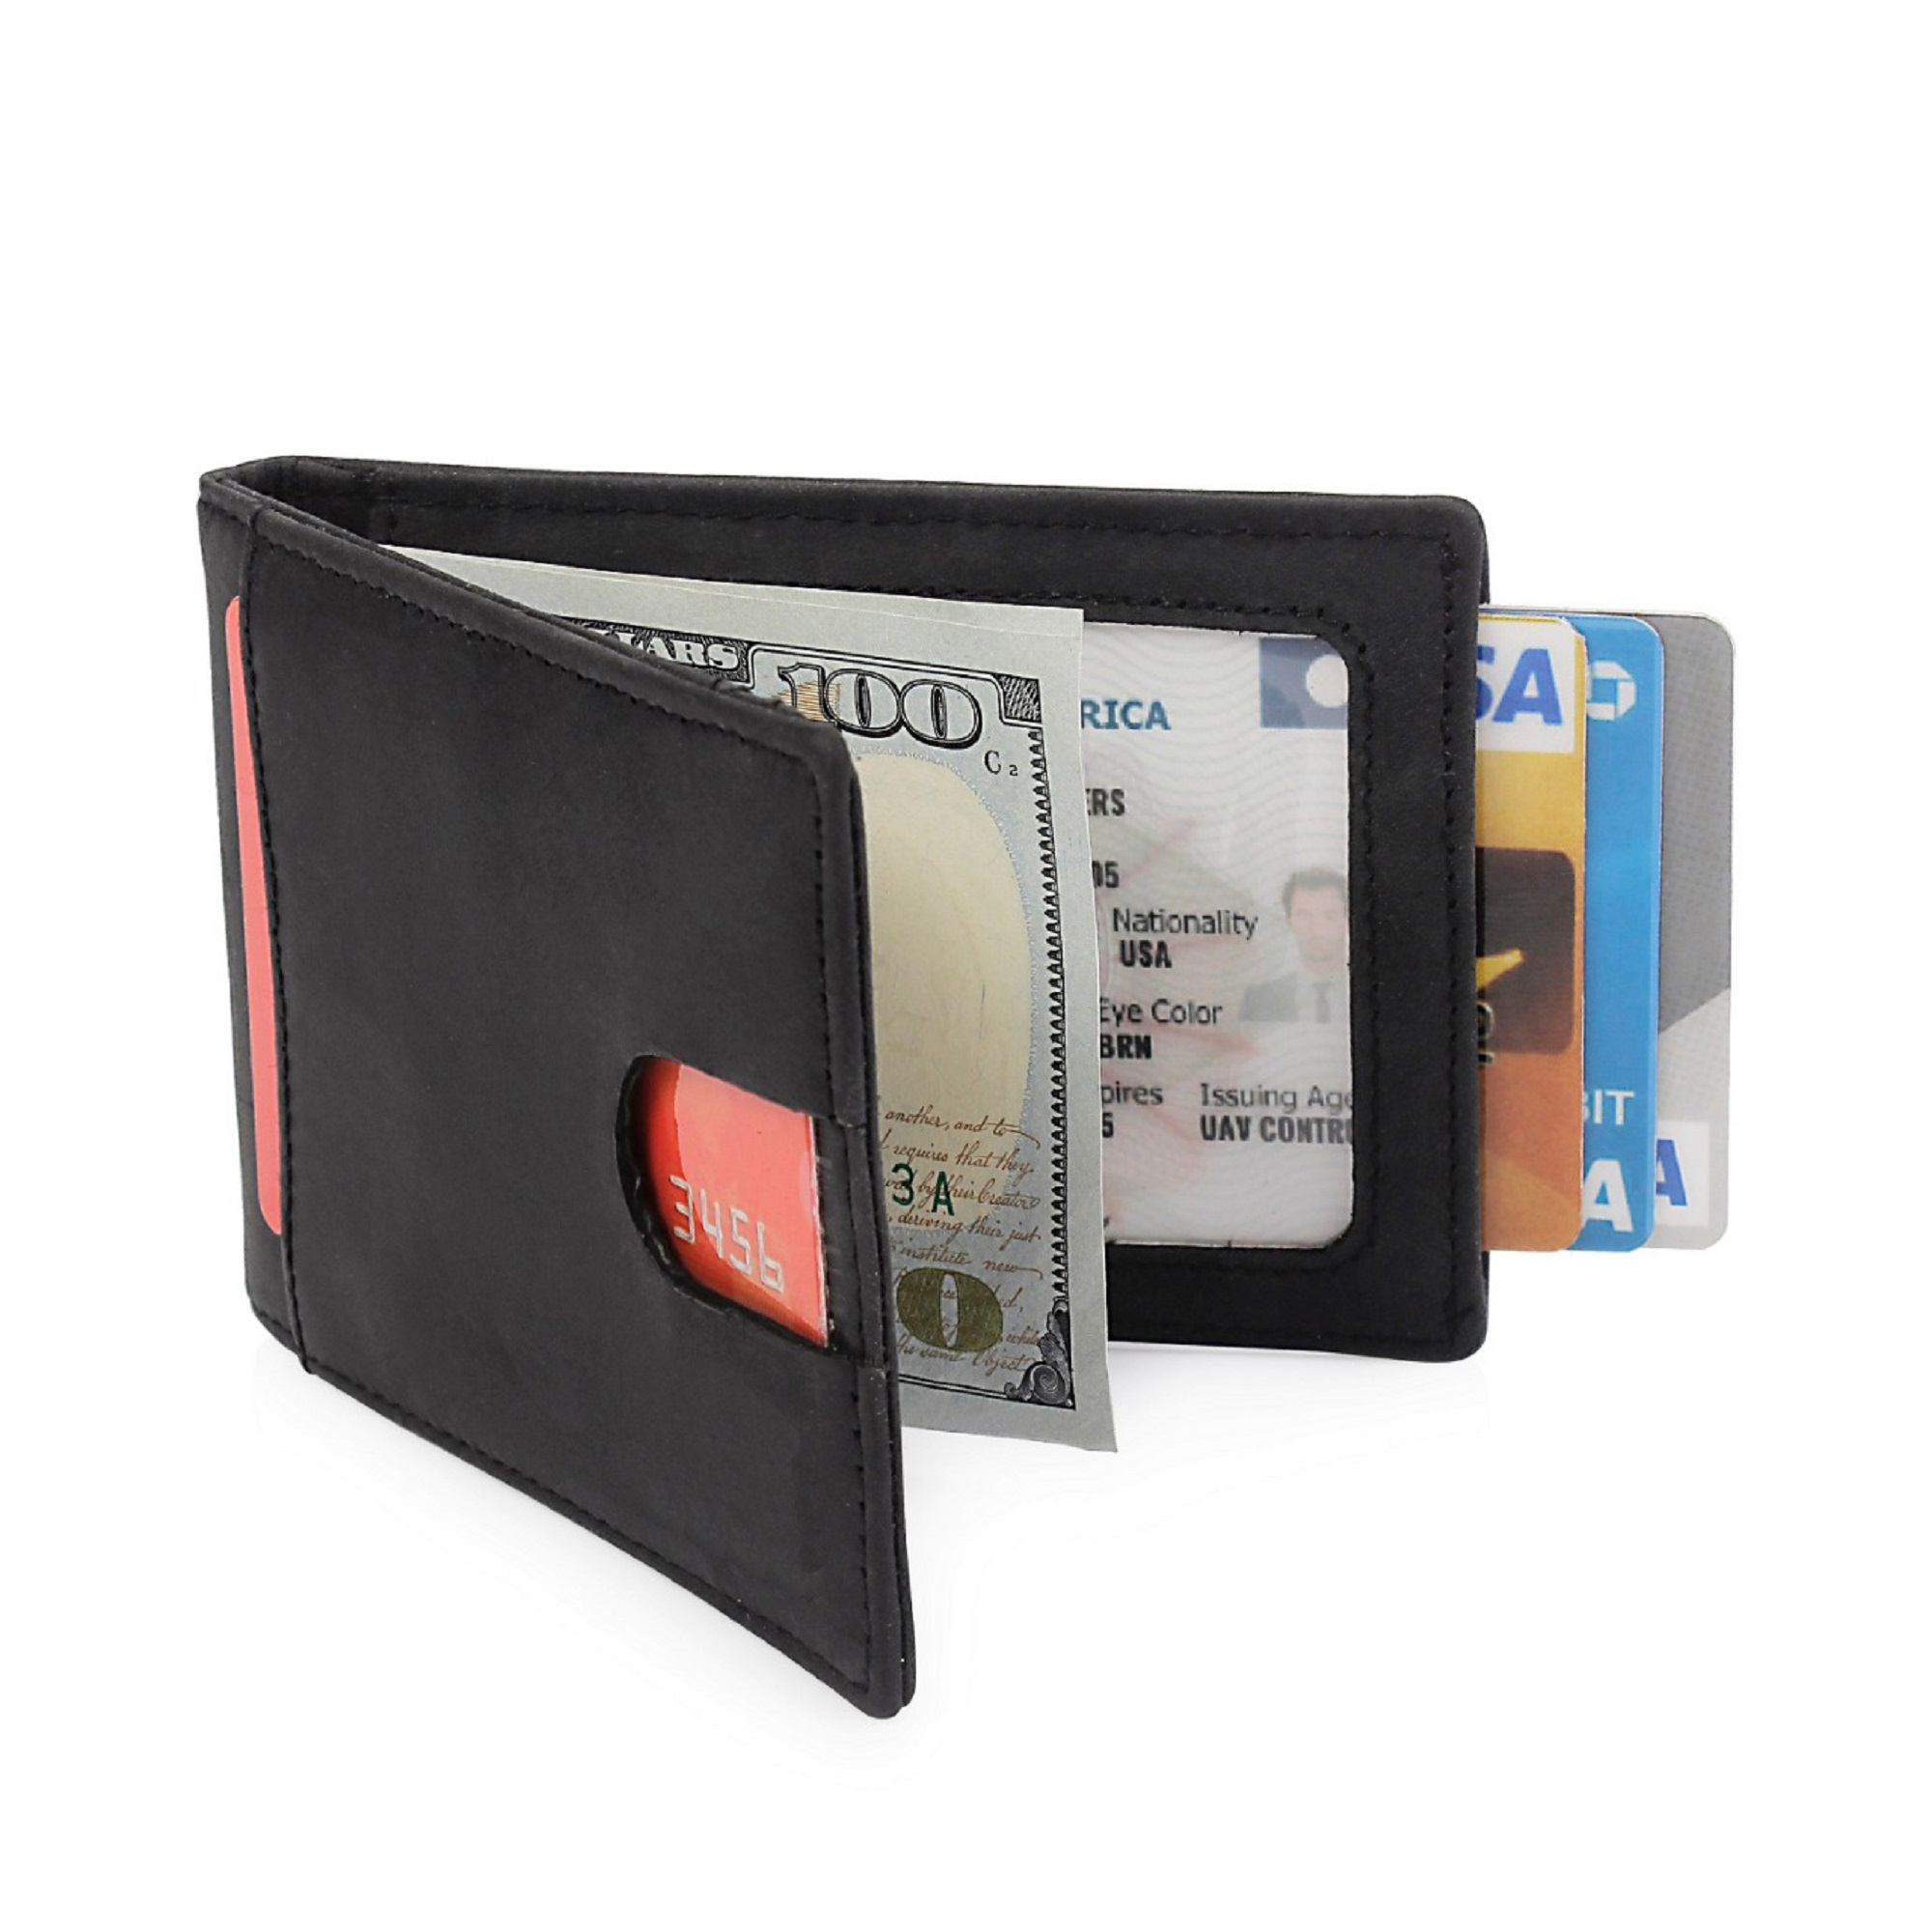 Leather Money Clip Wallet Manufacturers In Germany, Money Clip Wallet Suppliers In Germany, Money Clip Wallet Wholesalers In Germany, Money Clip Wallet Traders In Germany